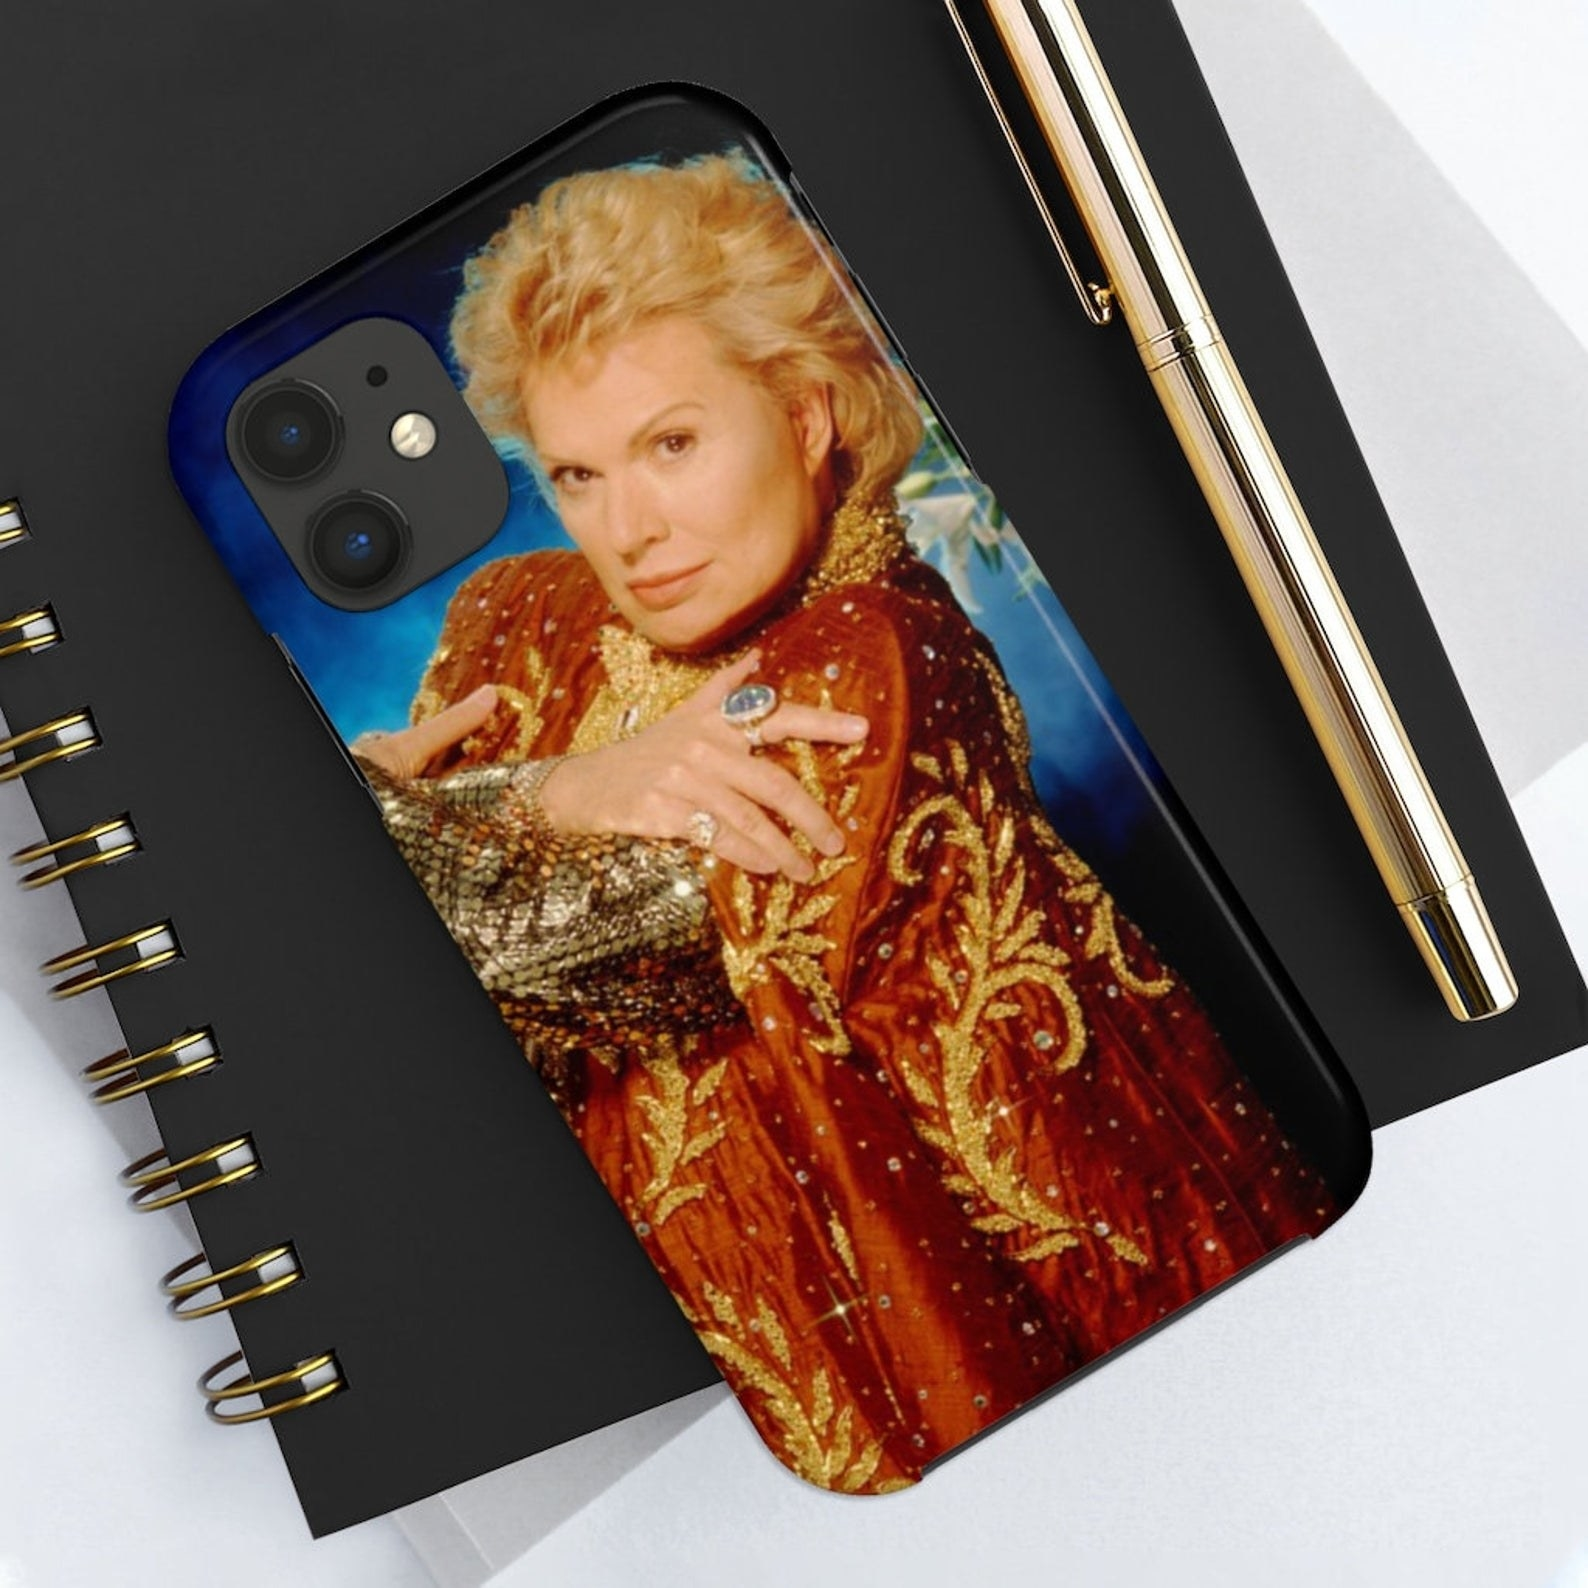 A smartphone cover featuring an image of Walter Mercado with his arms crossed